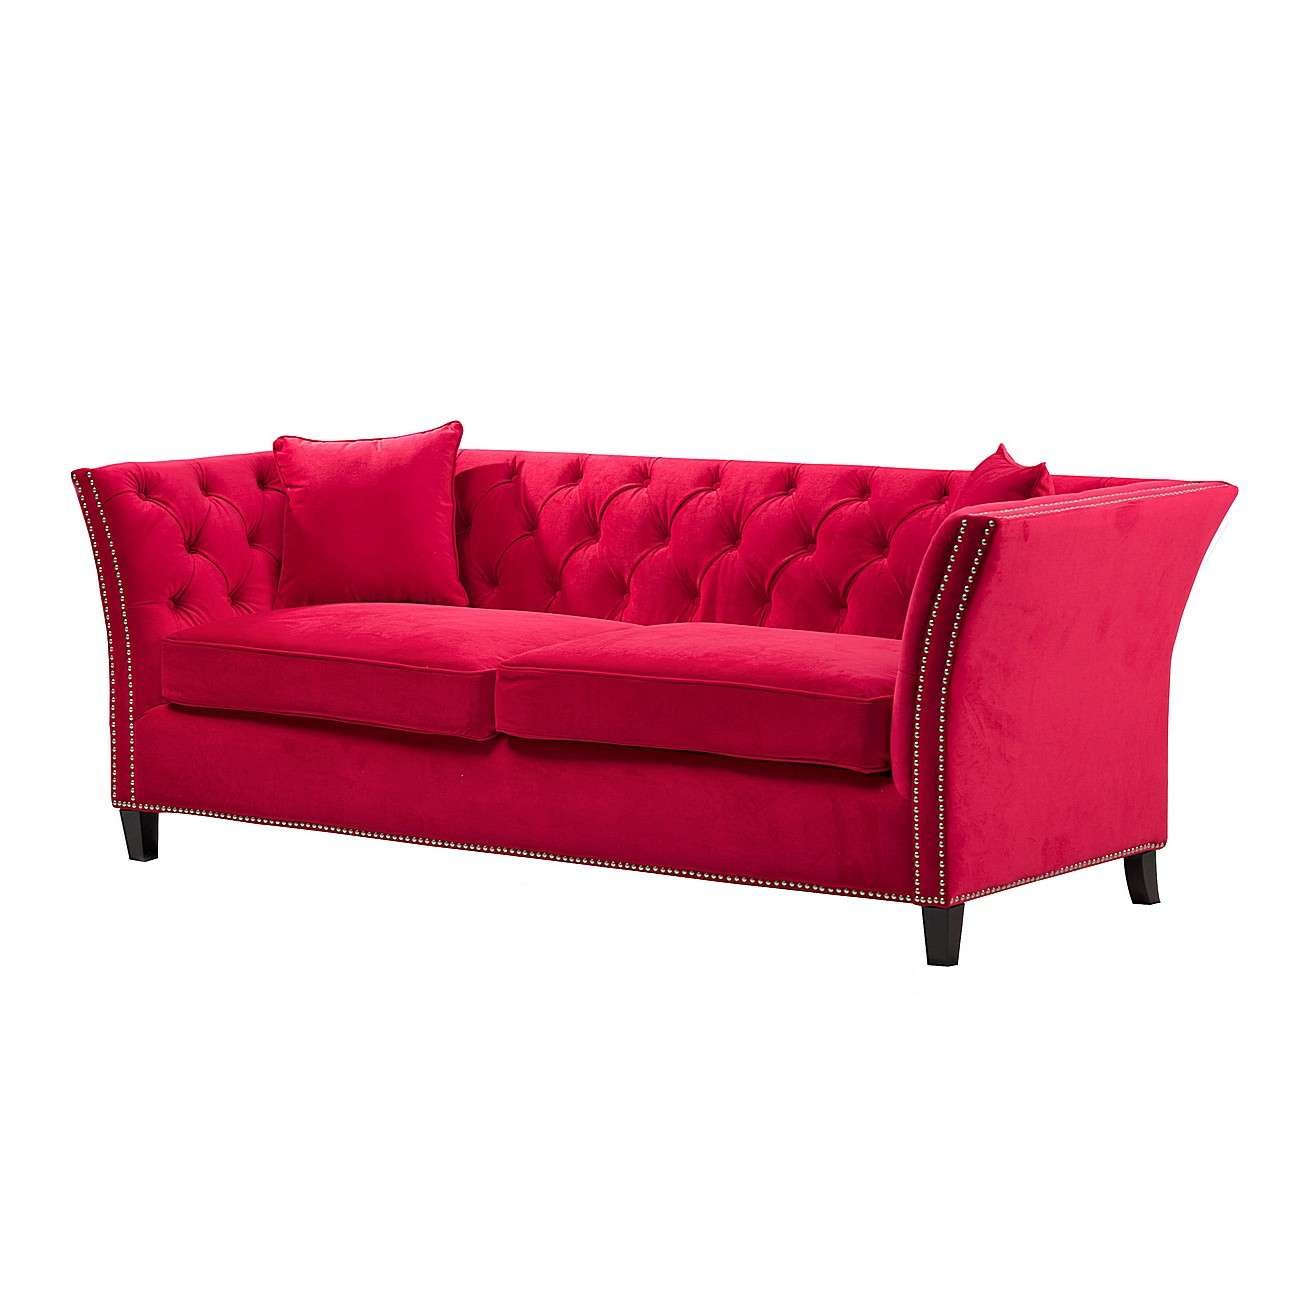 sofa chesterfield modern velvet raspberry red 3 os dekoria. Black Bedroom Furniture Sets. Home Design Ideas